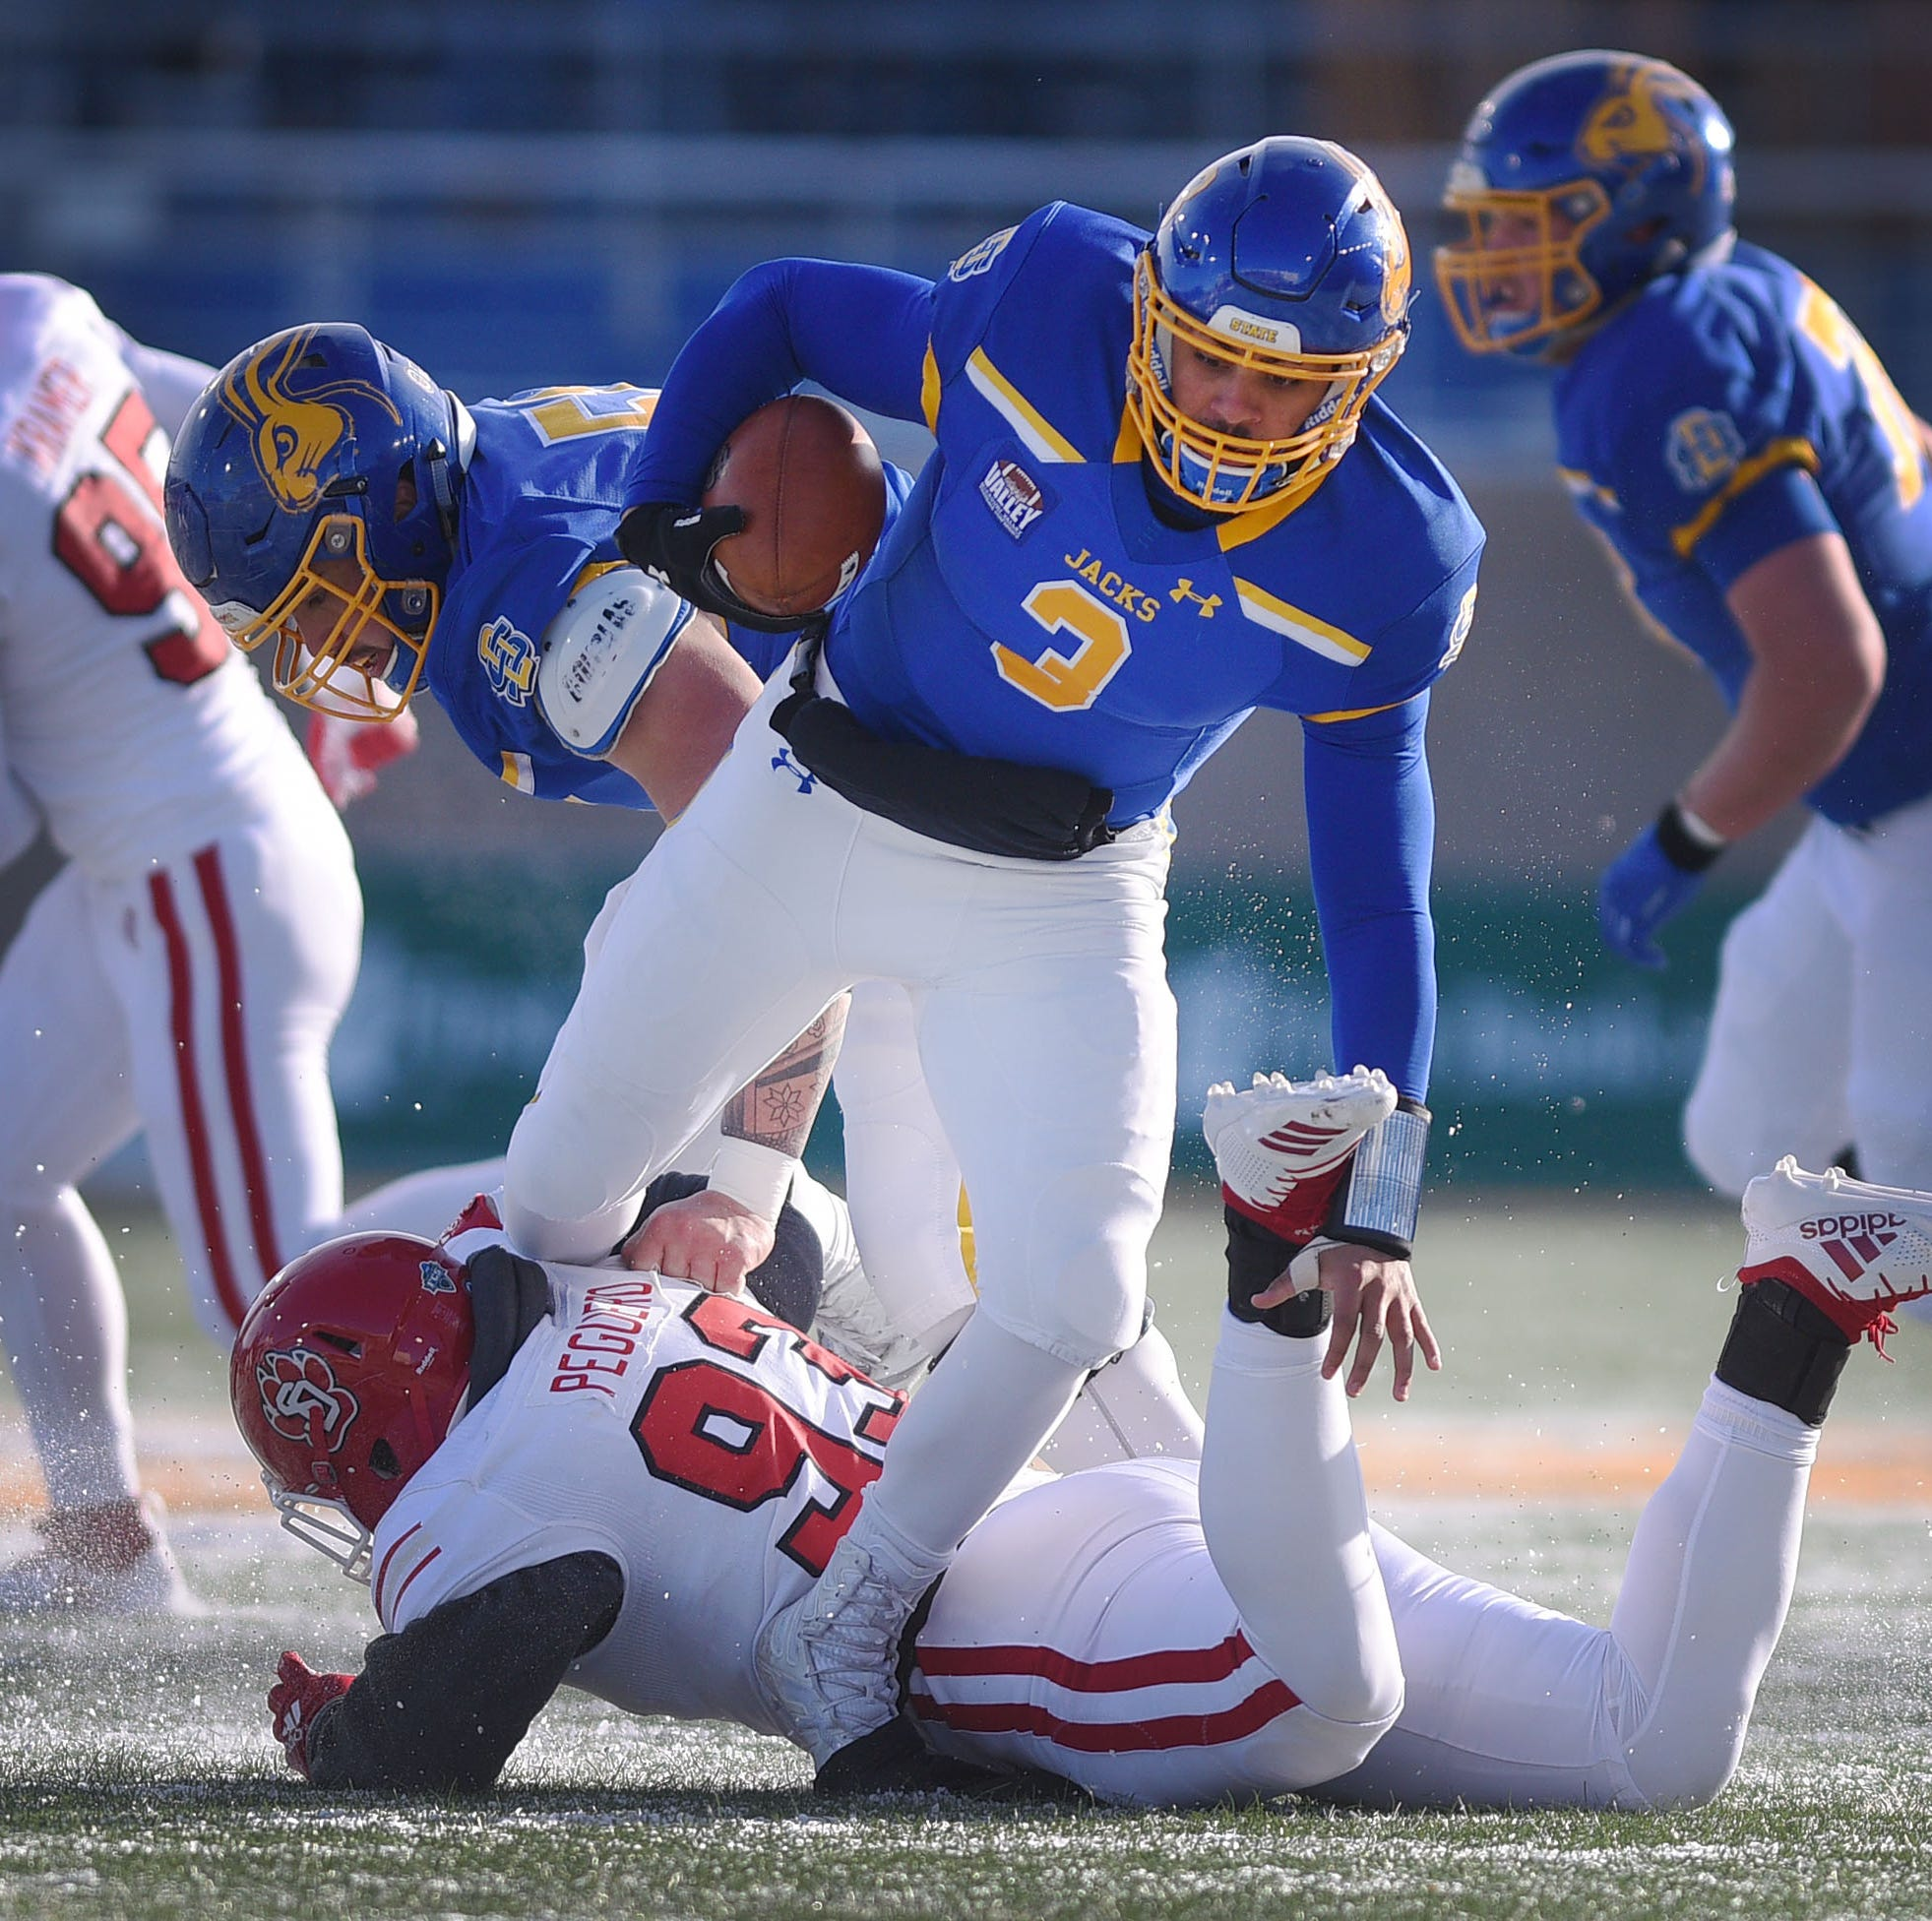 South Dakota State likely secures playoff bye with win over South Dakota